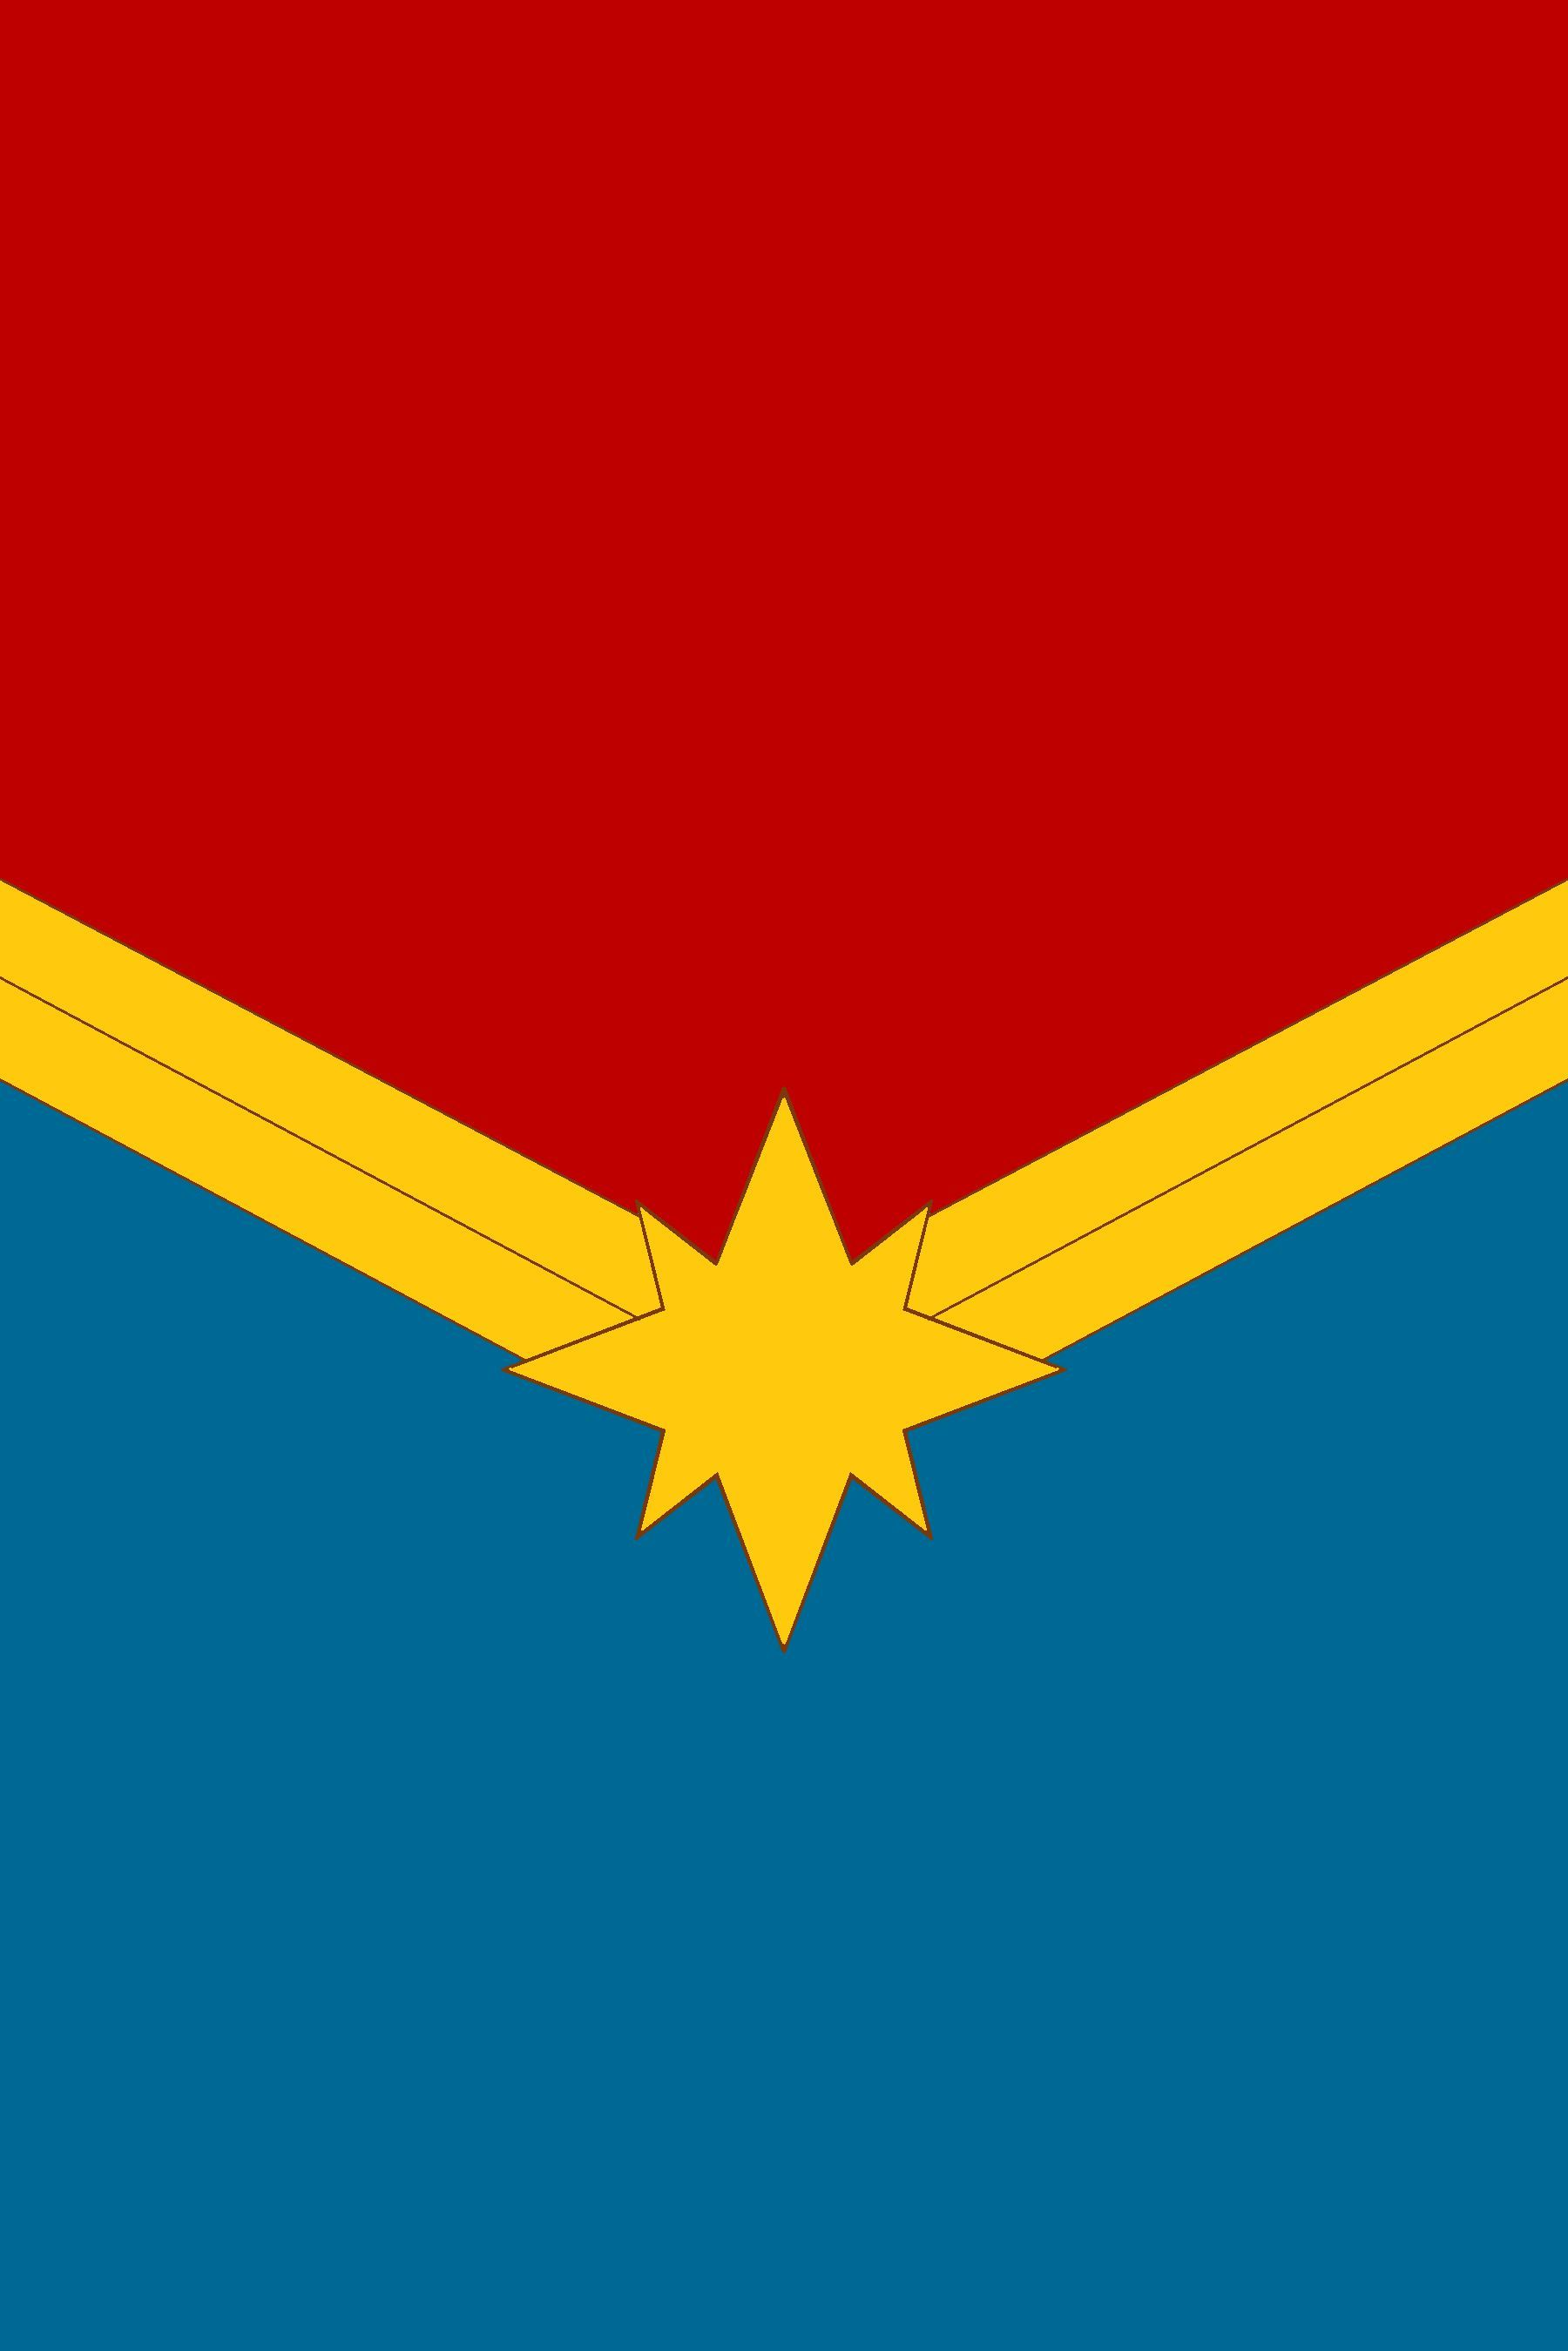 captain marvel emblem